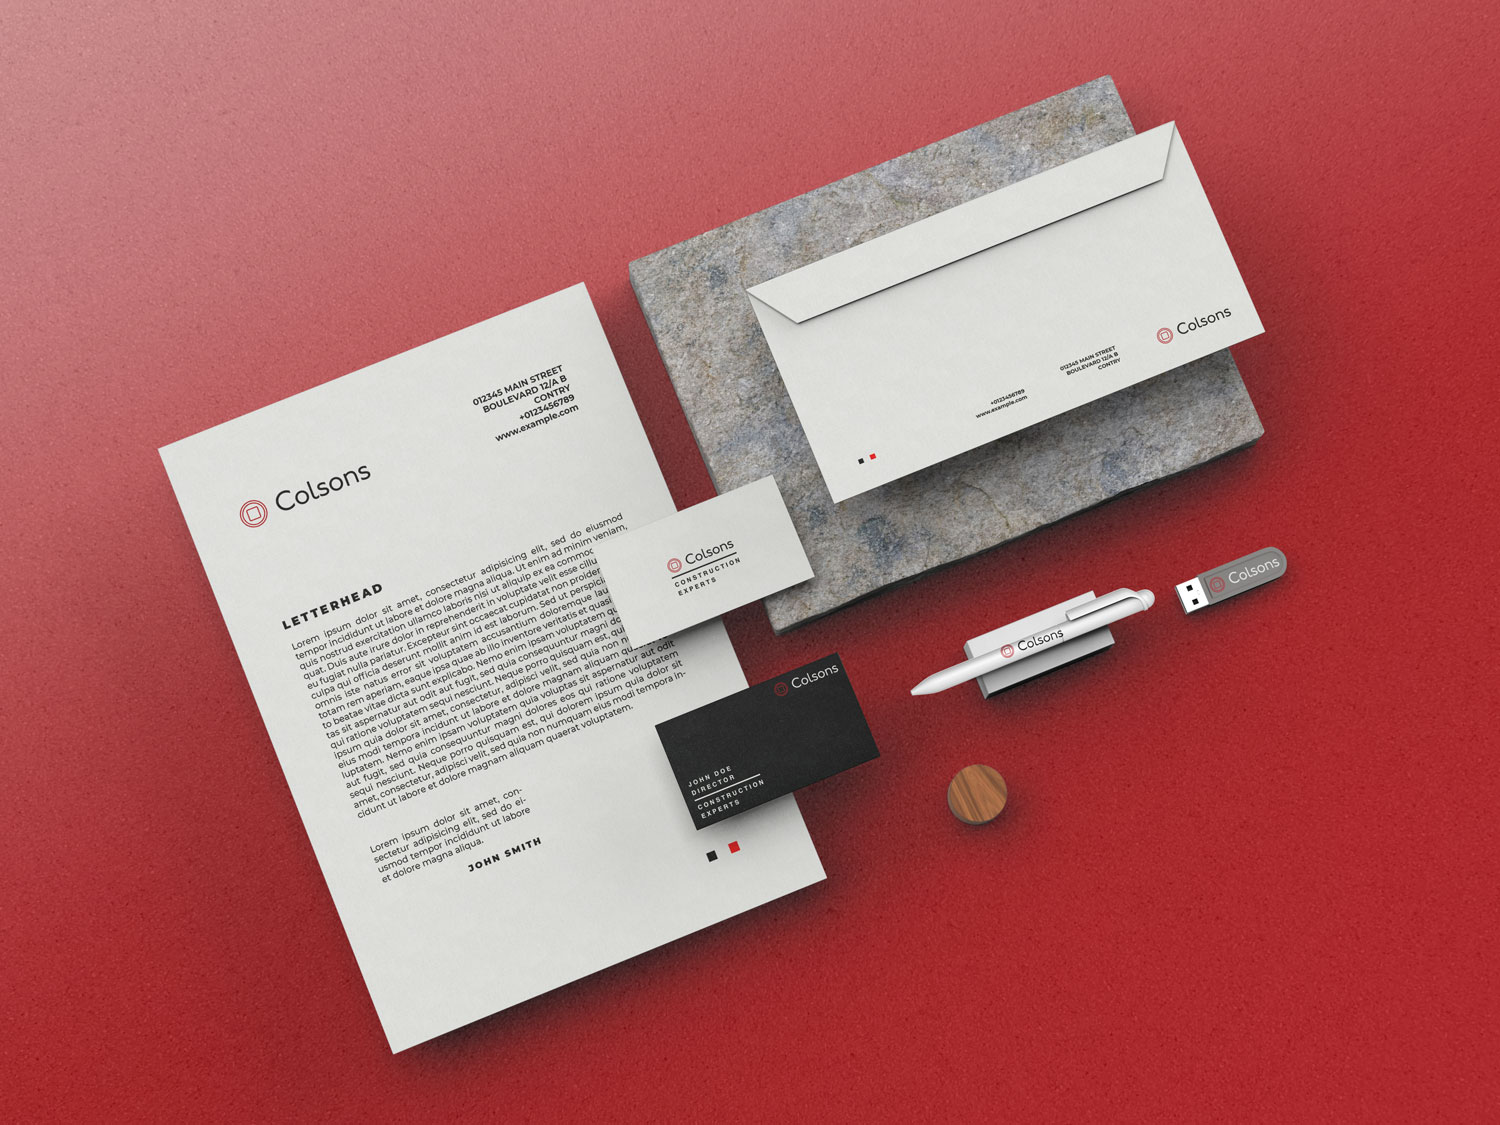 graphic design mockup of branding for Colsons Construction